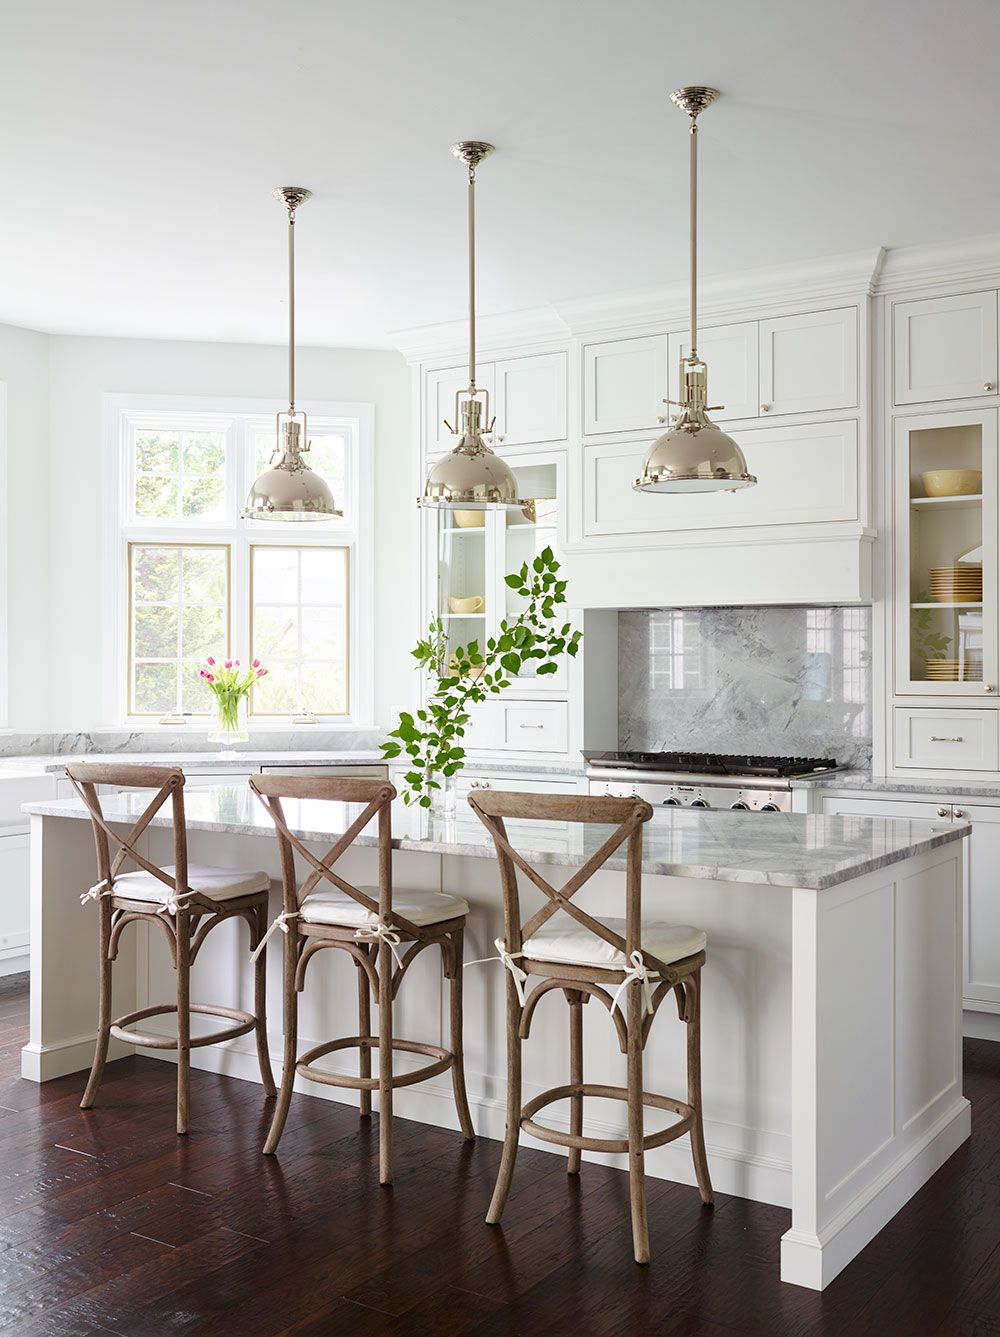 Bright white custom kitchen designed by shophouse floor to ceiling